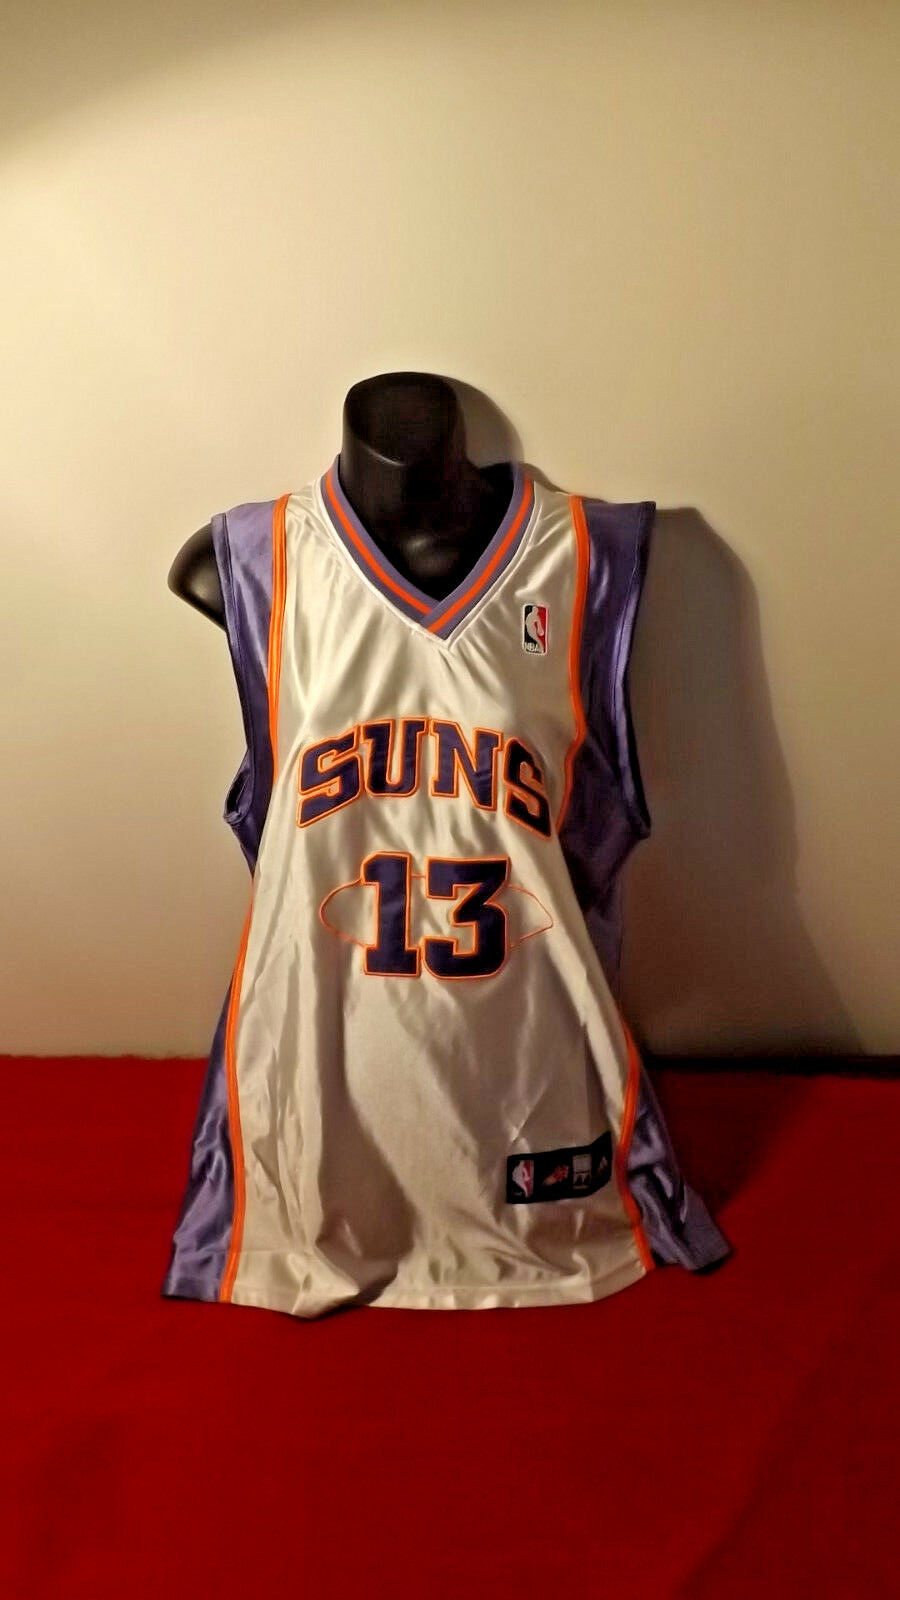 PHOENIX SUNS OFFICAL ADIDAS JERSEY 13 NASH IN GREAT CONDITION SIZE 44